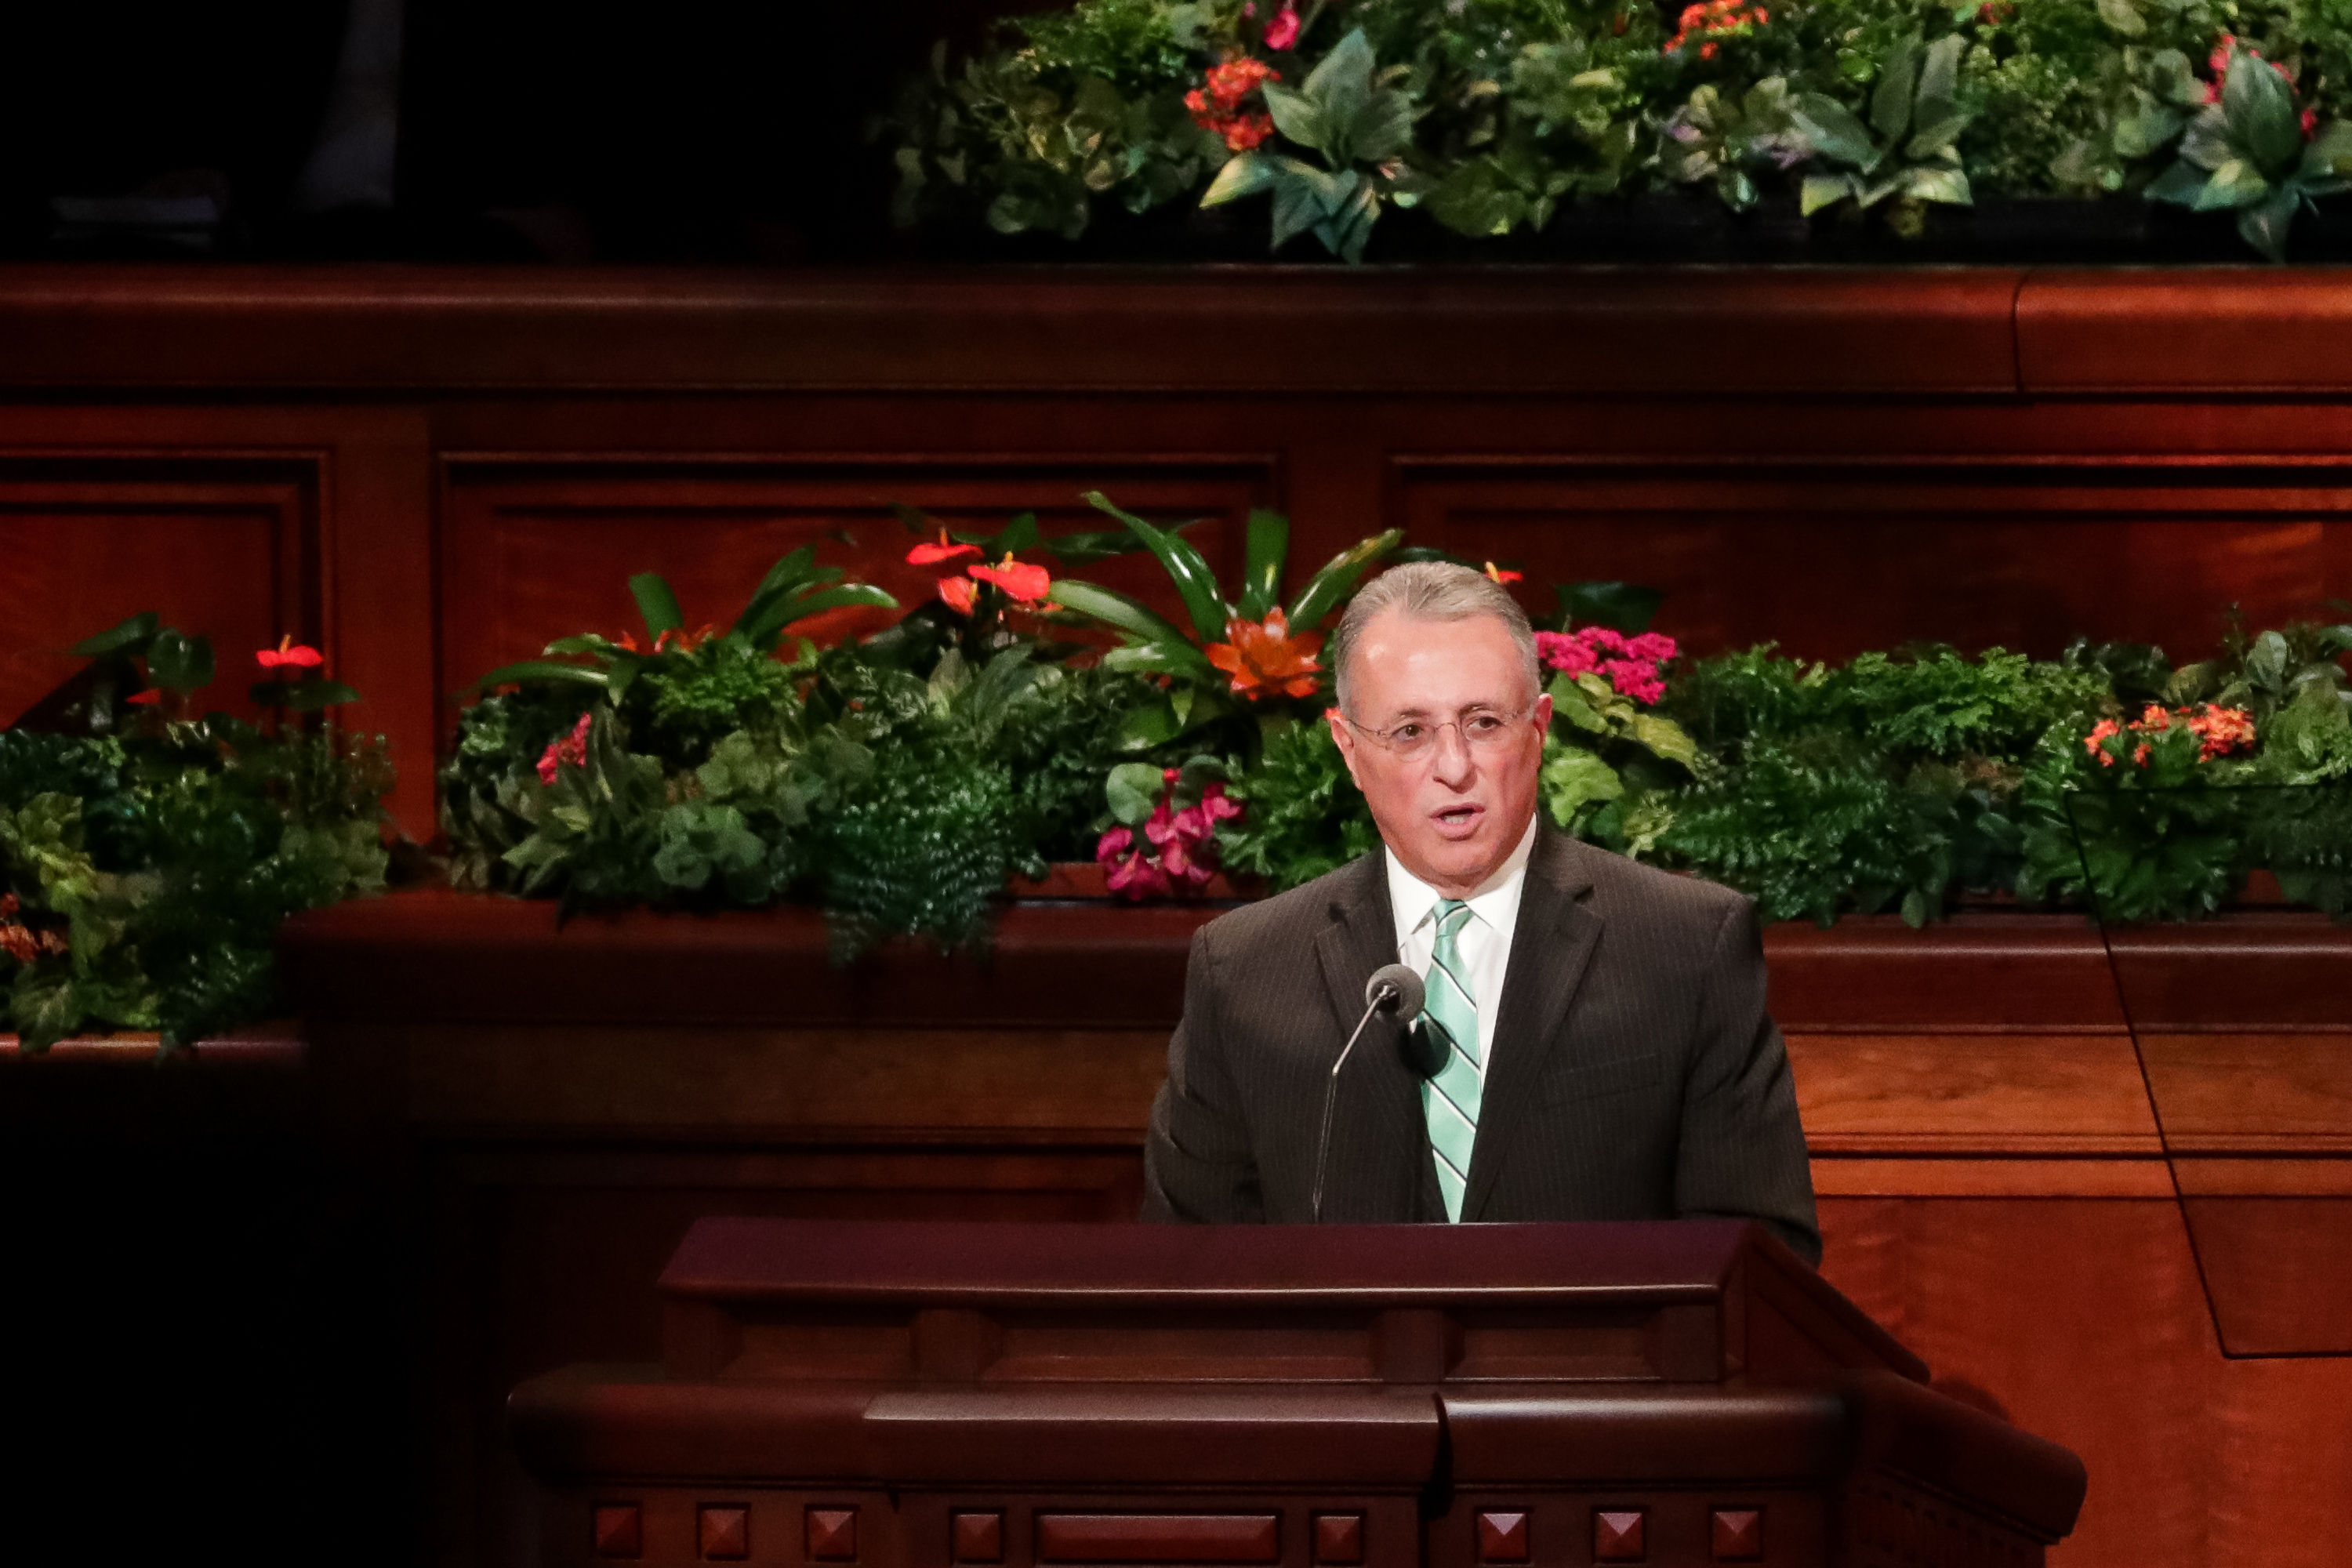 Elder Ulisses Soares of the Quorum of the Twelve Apostles speaks during the Saturday afternoon session of the 188th Semiannual General Conference of The Church of Jesus Christ of Latter-day Saints in the Conference Center in Salt Lake City on Saturday, Oct. 6, 2018.